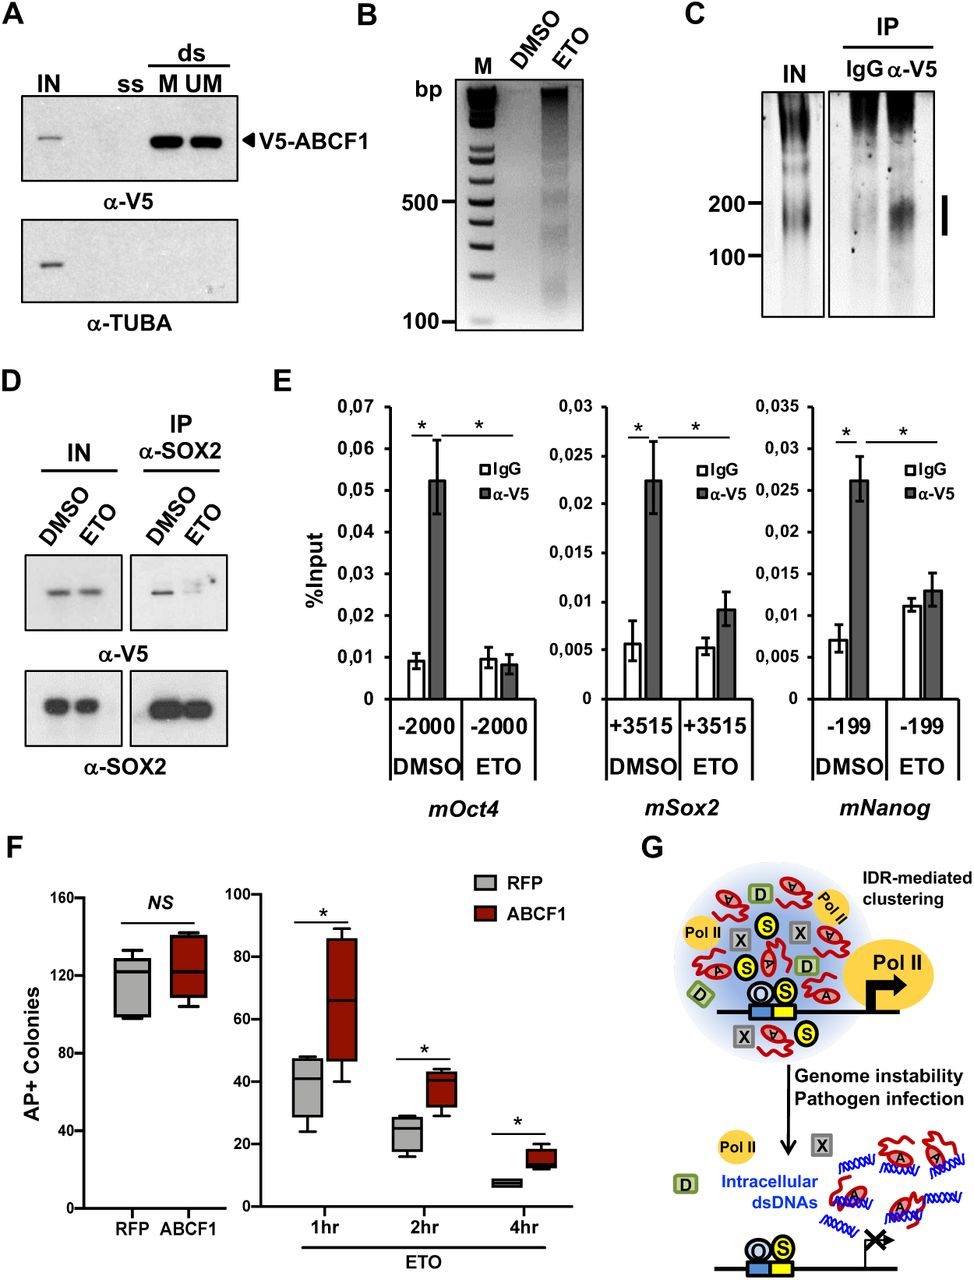 Intracellular DNAs modulate pluripotency gene expressions through ABCF1. (A) V5-ABCF1 D3 mouse ES cell WCEs are incubated with three different 5' biotinylated 98mer oligonucleotides: single-stranded (ss), double-stranded (ds) with SOX2-binding motif (Matched, ds-M), or ds without the motif (Unmatched, ds-UM). These DNA sequences are derived from Listeria monocytogenes genome. Input WCEs (IN) and streptavidin-beads captured, DNA-bound ABCF1 proteins are analyzed by western blotting. α-tubulin (TUBA) is used as control for binding specificity. (B) Genomic DNA purified from nuclear extracts prepared from DMSO and etoposide-treated (ETO, 20 μM) V5-ABCF1 knock-in (KI) D3 ES cells were analyzed on agarose gel and stained with ethidium bromide. (C) WCEs prepared from ETO-treated (20 μM) V5-ABCF1 KI D3 ES cells are incubated with IgGs or anti-V5 antibodies. Co-purified nucleic acids are treated with RNase A, separated on urea-PAGE, and stained with SYBR Gold. Vertical bar denotes DNAs specifically bound by ABCF1. (D) DNA damage disrupts ABCF1-SOX2 interaction. Input (IN) and SOX2 IPs from WCEs of DMSO or ETO-treated (20 μM) V5-ABCF1 KI D3 ES cells are analyzed by western blotting. (E) MNase-ChIP of ABCF1 in DMSO and ETO-treated (80 μM) V5-ABCF1 KI D3 ES cells. Enrichment of ABCF1 on OCT4/SOX2-targeted regions of Oct4, Sox2 , and Nanog gene promoters is analyzed by qPCR as in Figure 4 . (F) Colony formation assays in control and ABCF1 gain-of-function D3 cells. 200 D3 ES cells stably expressing RFP or V5-ABCF1 are plated on 24-well plates, treated with DMSO (left) or ETO (1 μM, right) for indicated period of time (hr), and let recover for 6 days before staining for AP activity. AP-positive colonies are counted. Error bars represent SEM of three independent experiments. n = 3. (*) P